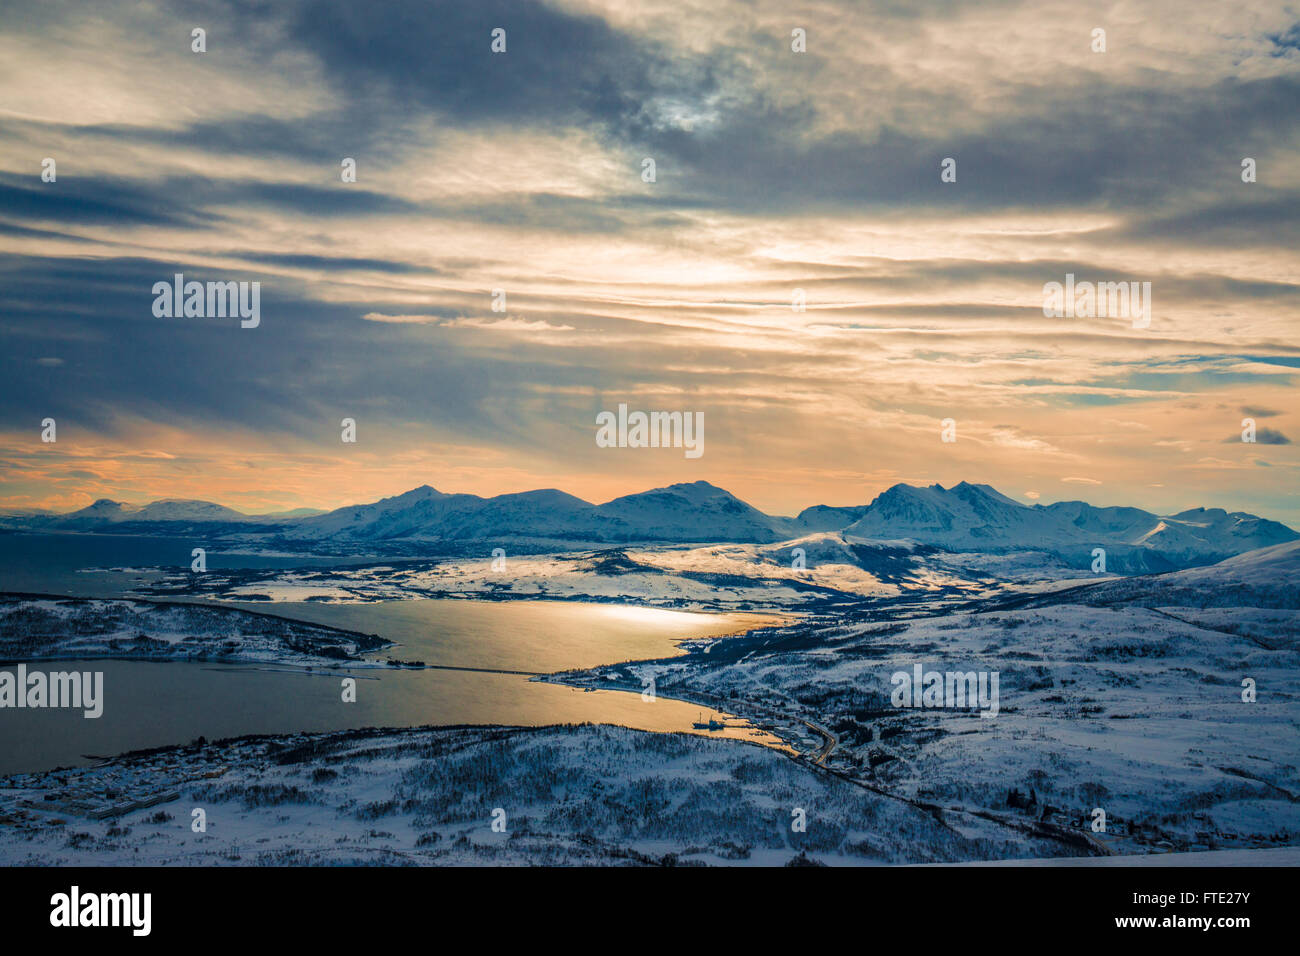 Mountains bathed in golden light from Finnlandsfjellet, Kvaloya, Northern Norway - Stock Image